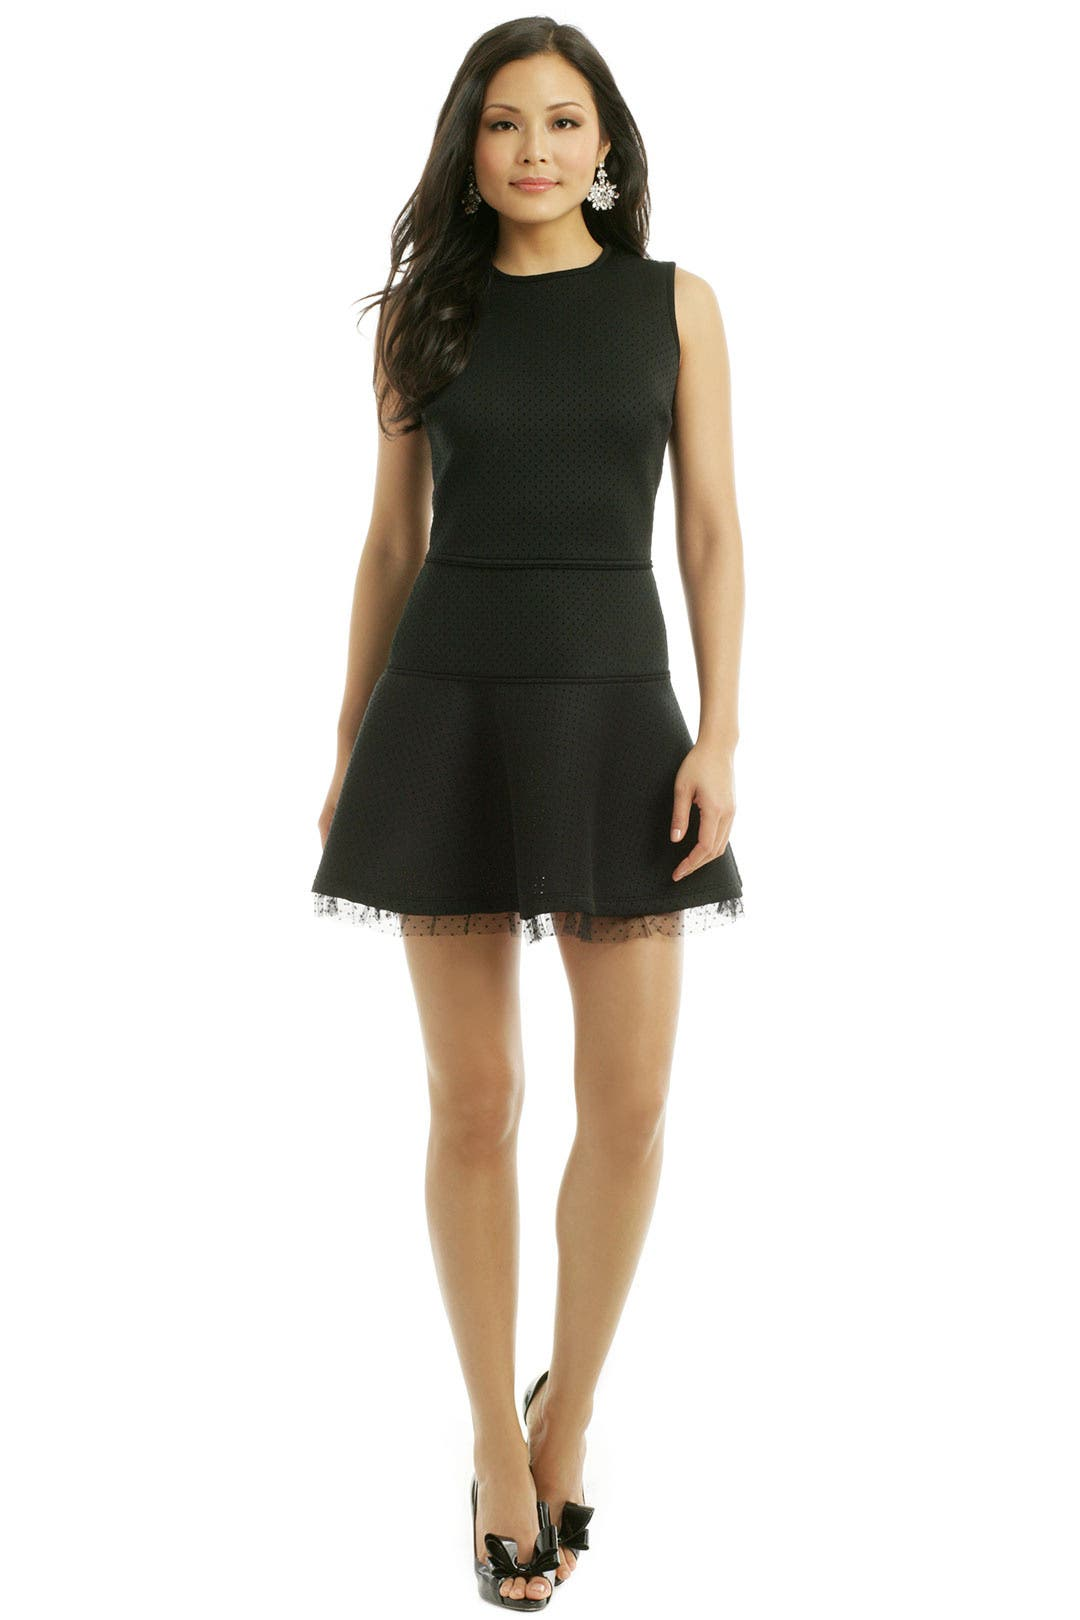 Edgy Sweet Dress by RED Valentino